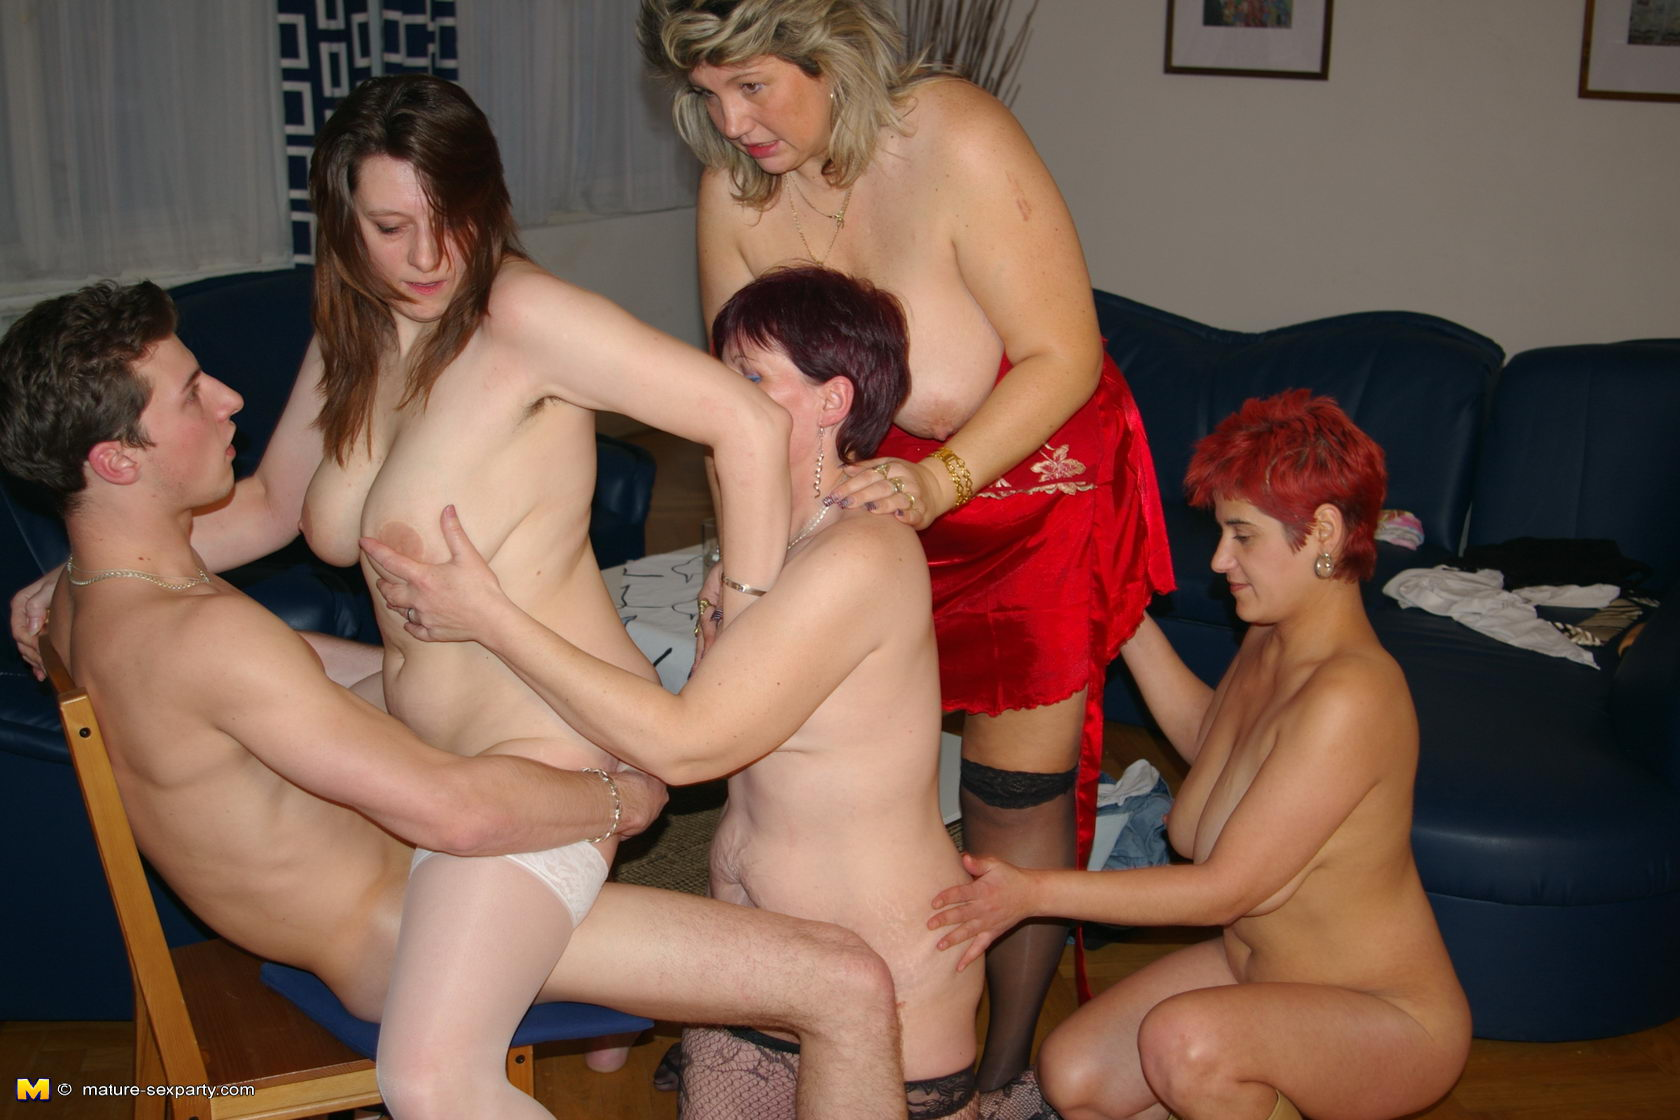 desinude girls showing hole